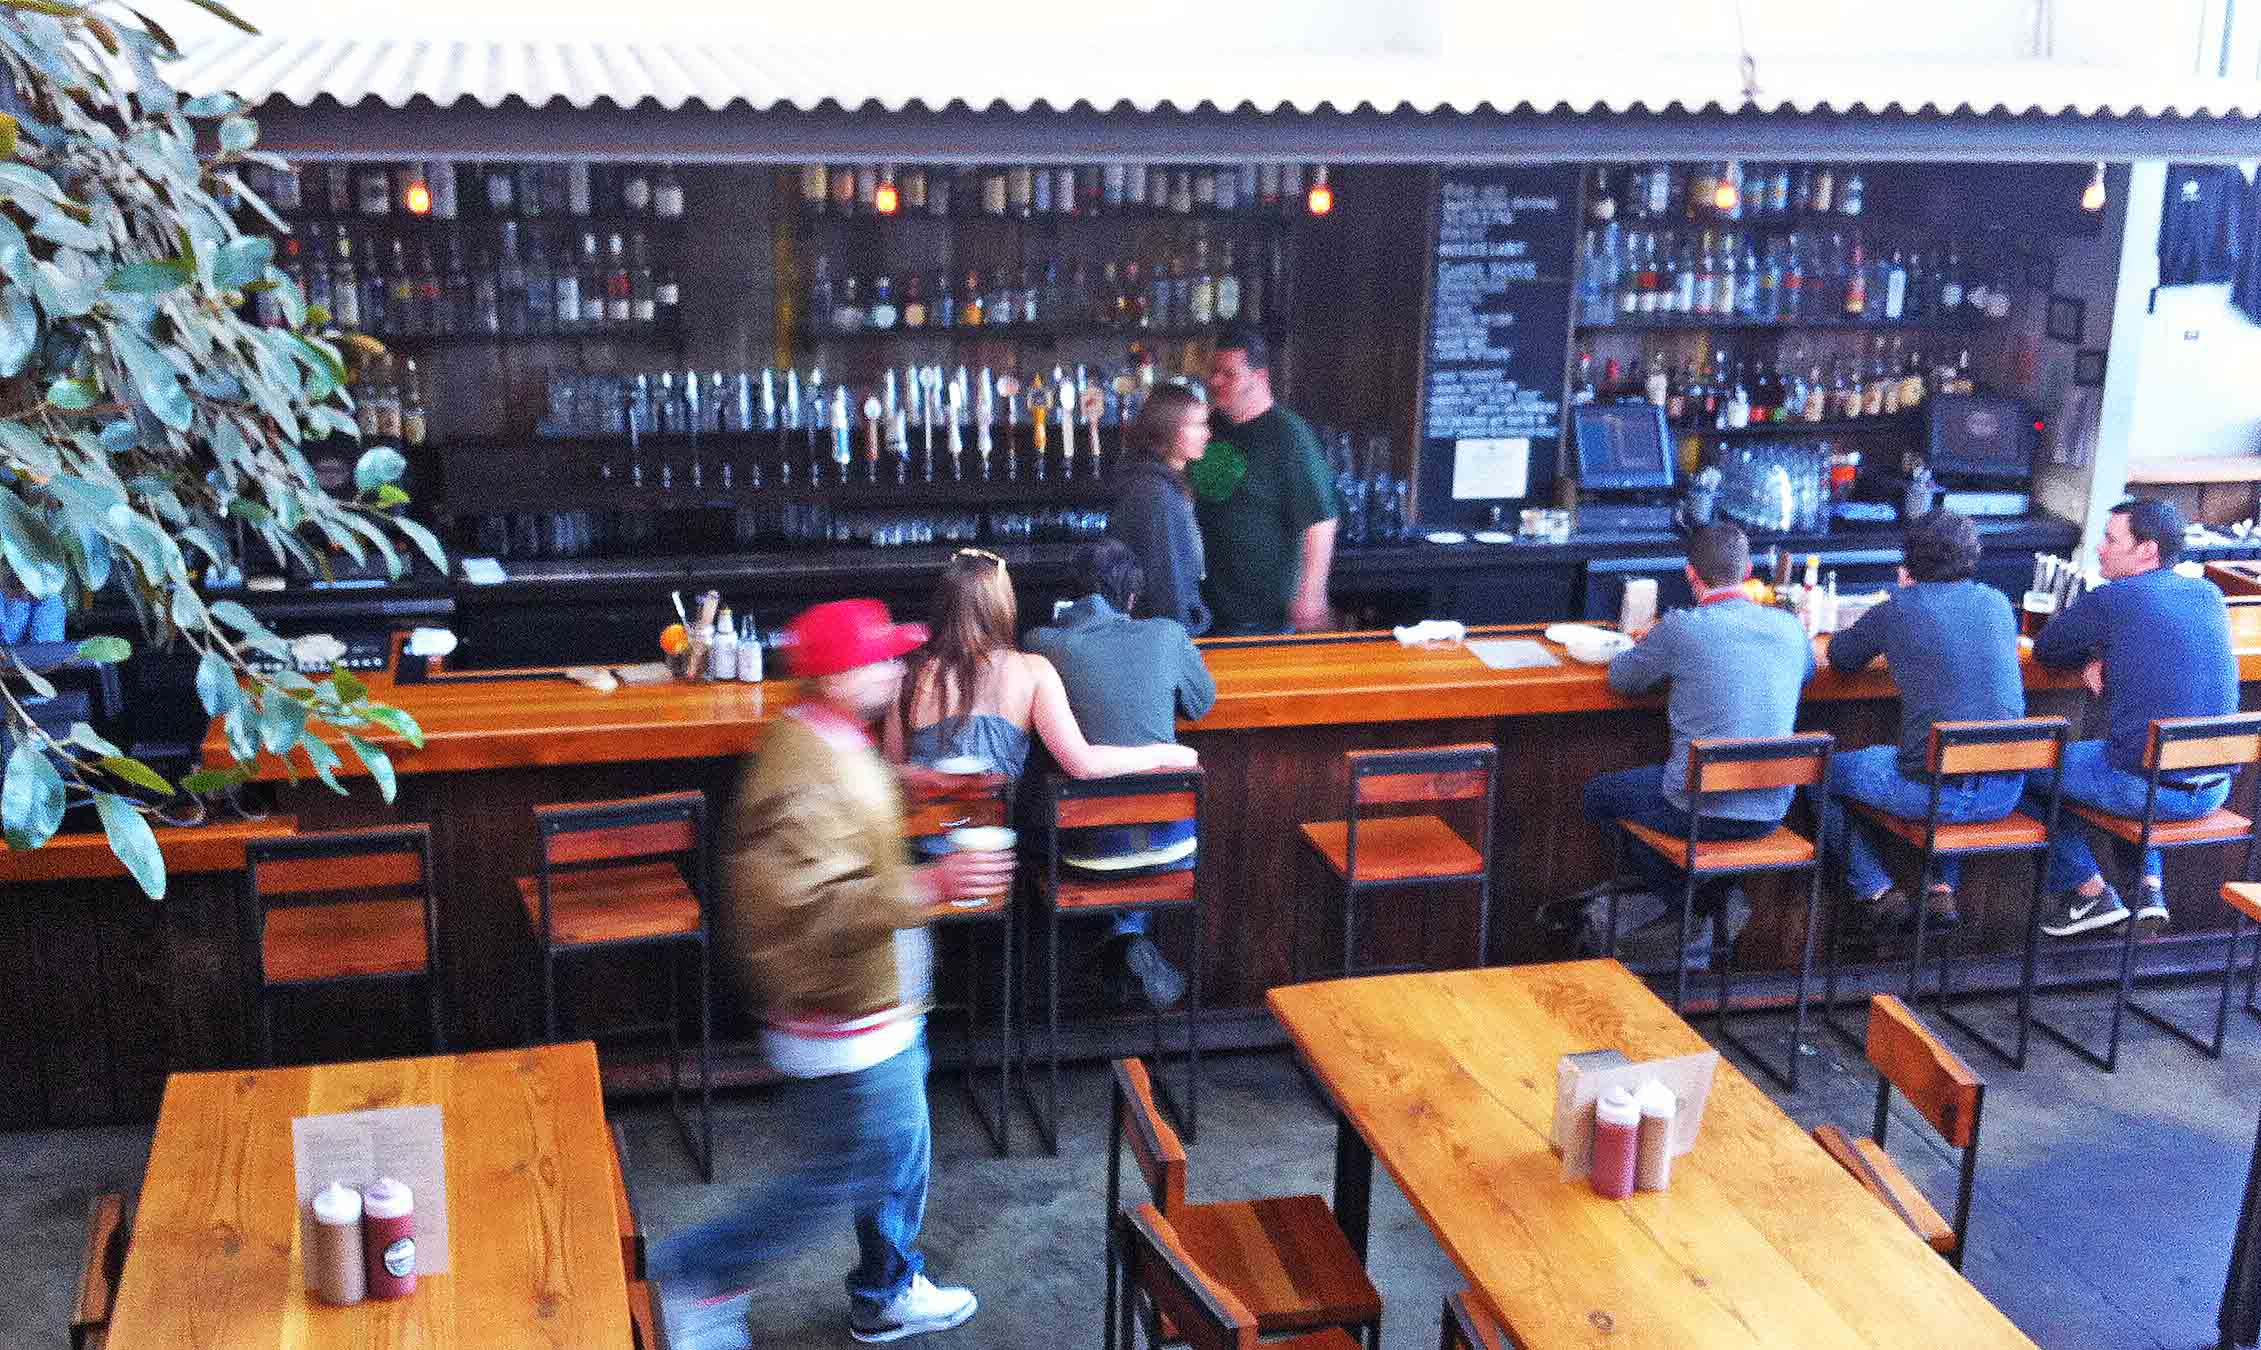 148. Southern Pacific Brewing, San Francisco CA 2013